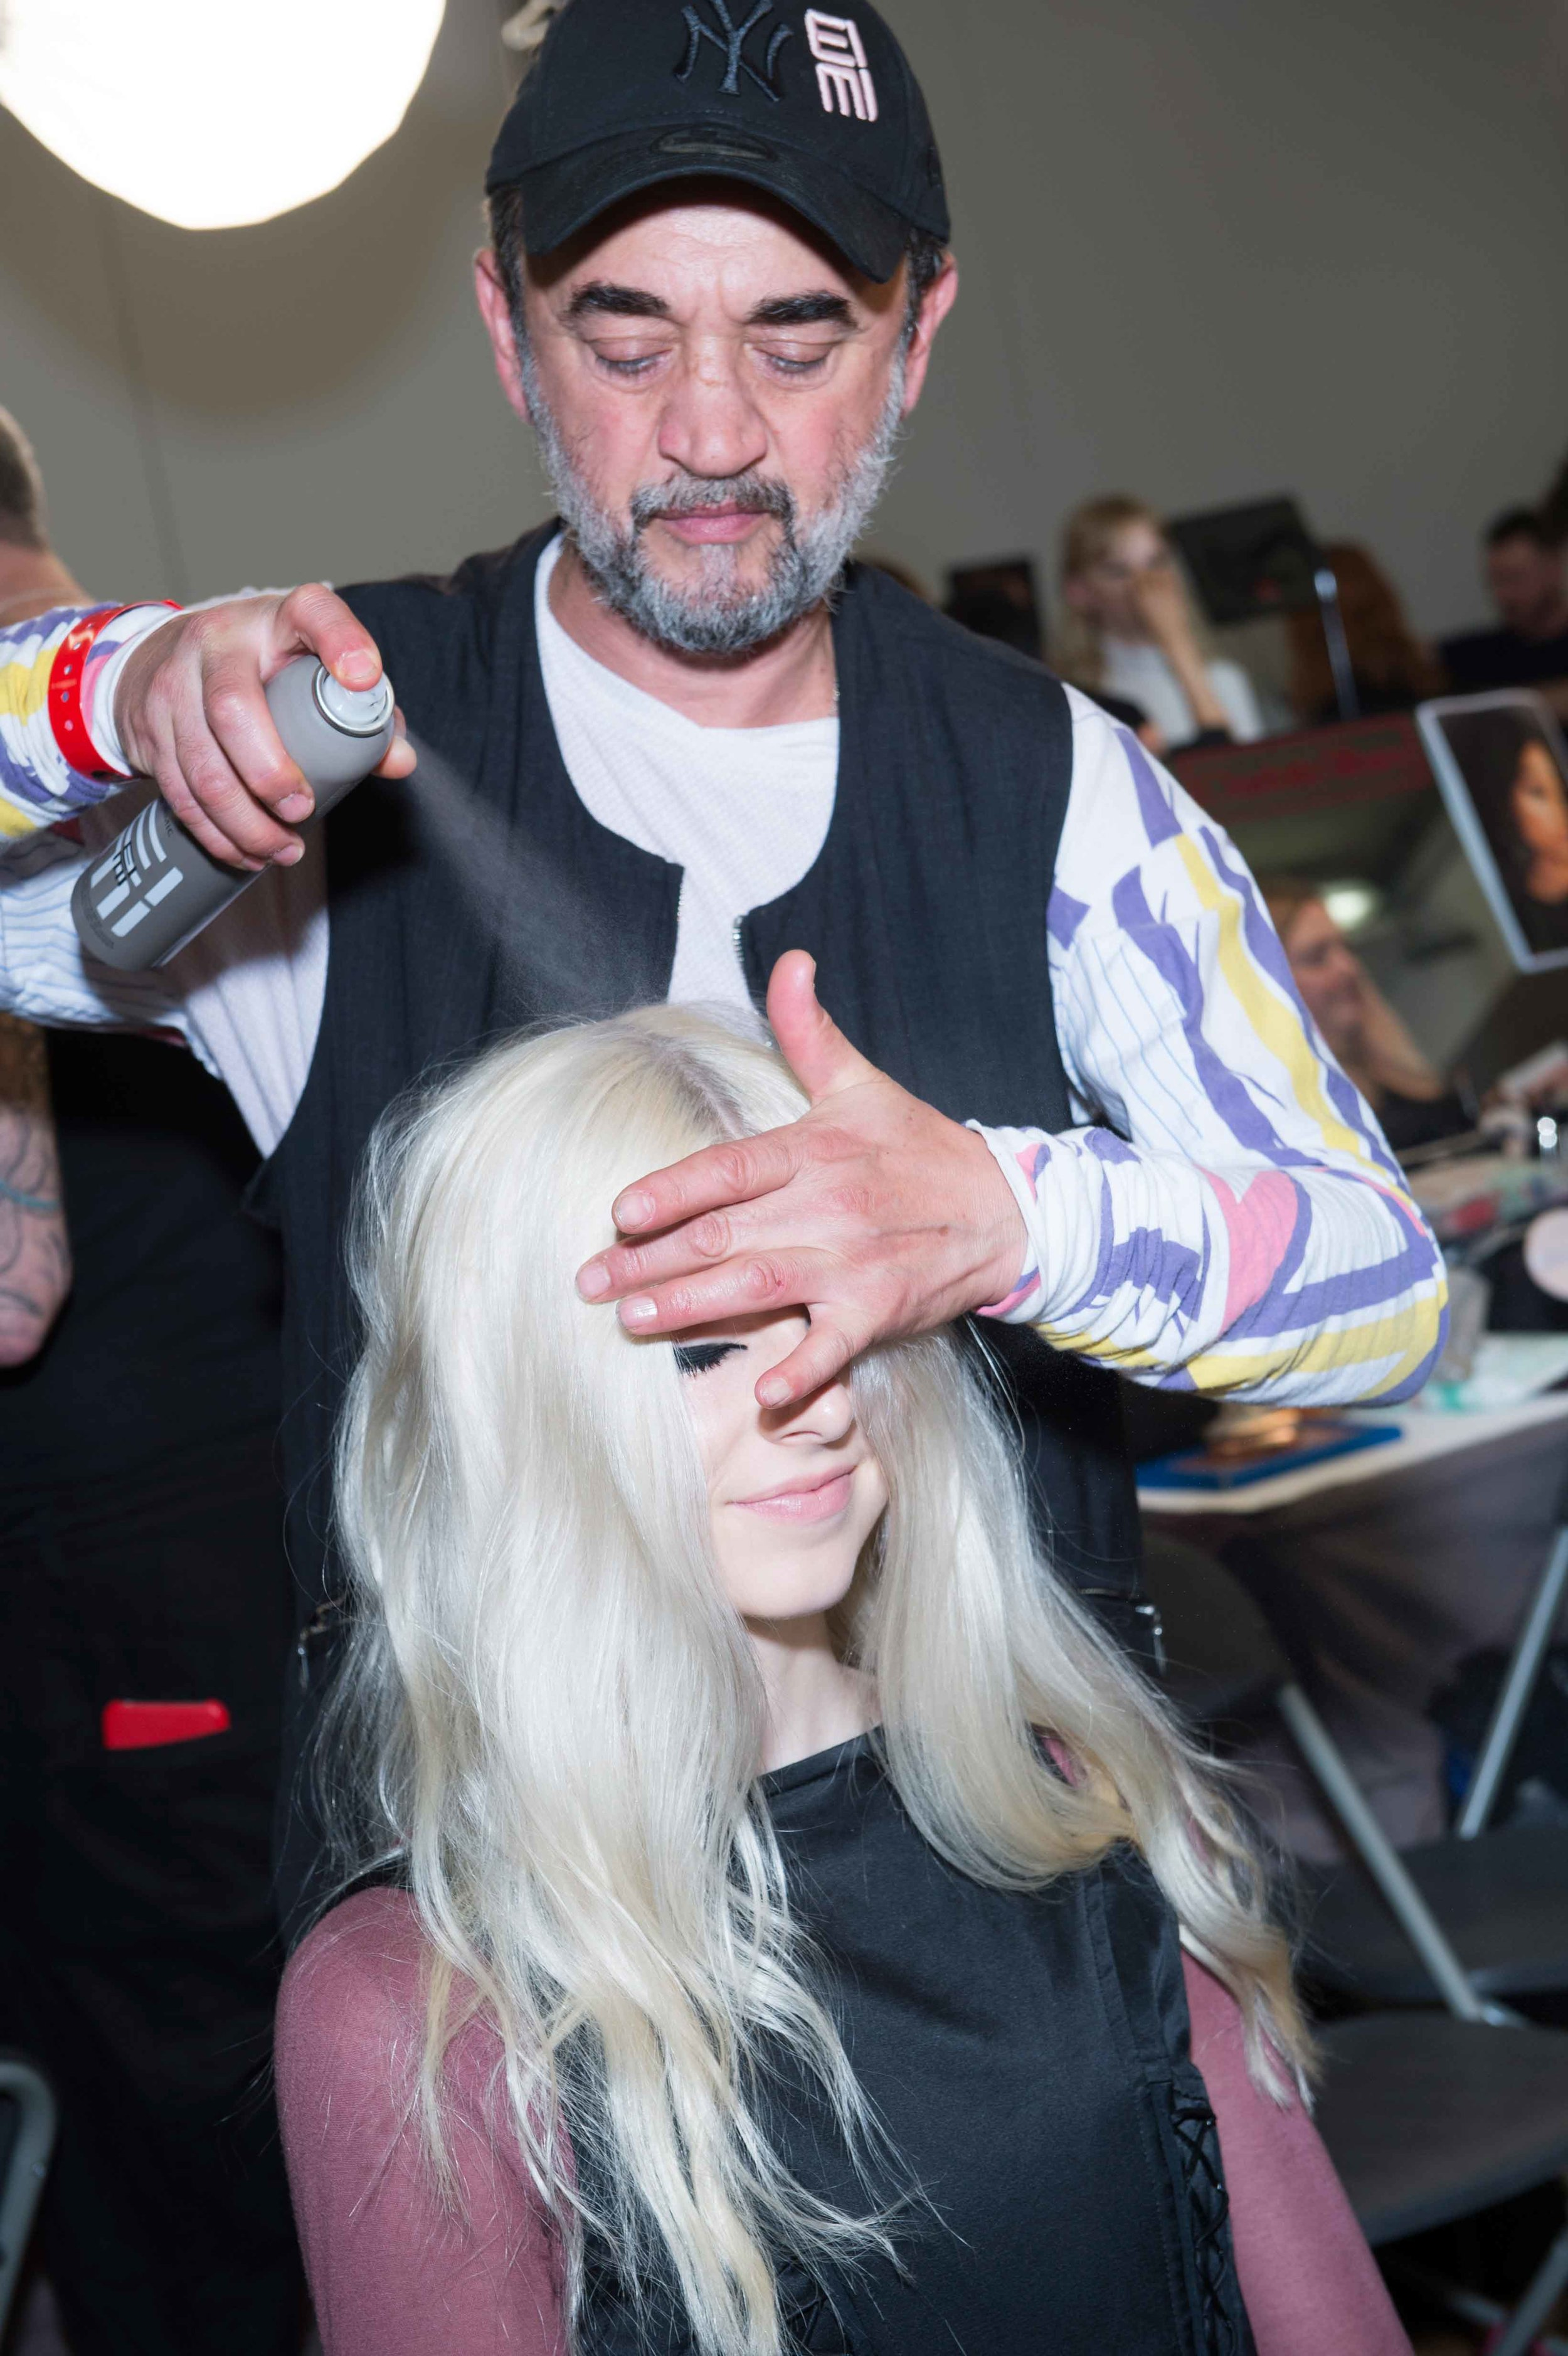 IL MAESTRO - When fashion week is close Eugene is definitely also part of the circus. As WELLA PROFESSIONALS Global Director and GHD Ambassador, the well-known hair stylist is one of those who make trends. Knowing that, each season we wait for his upcoming work and can't wait to catch some inspiring moments backstage with him.